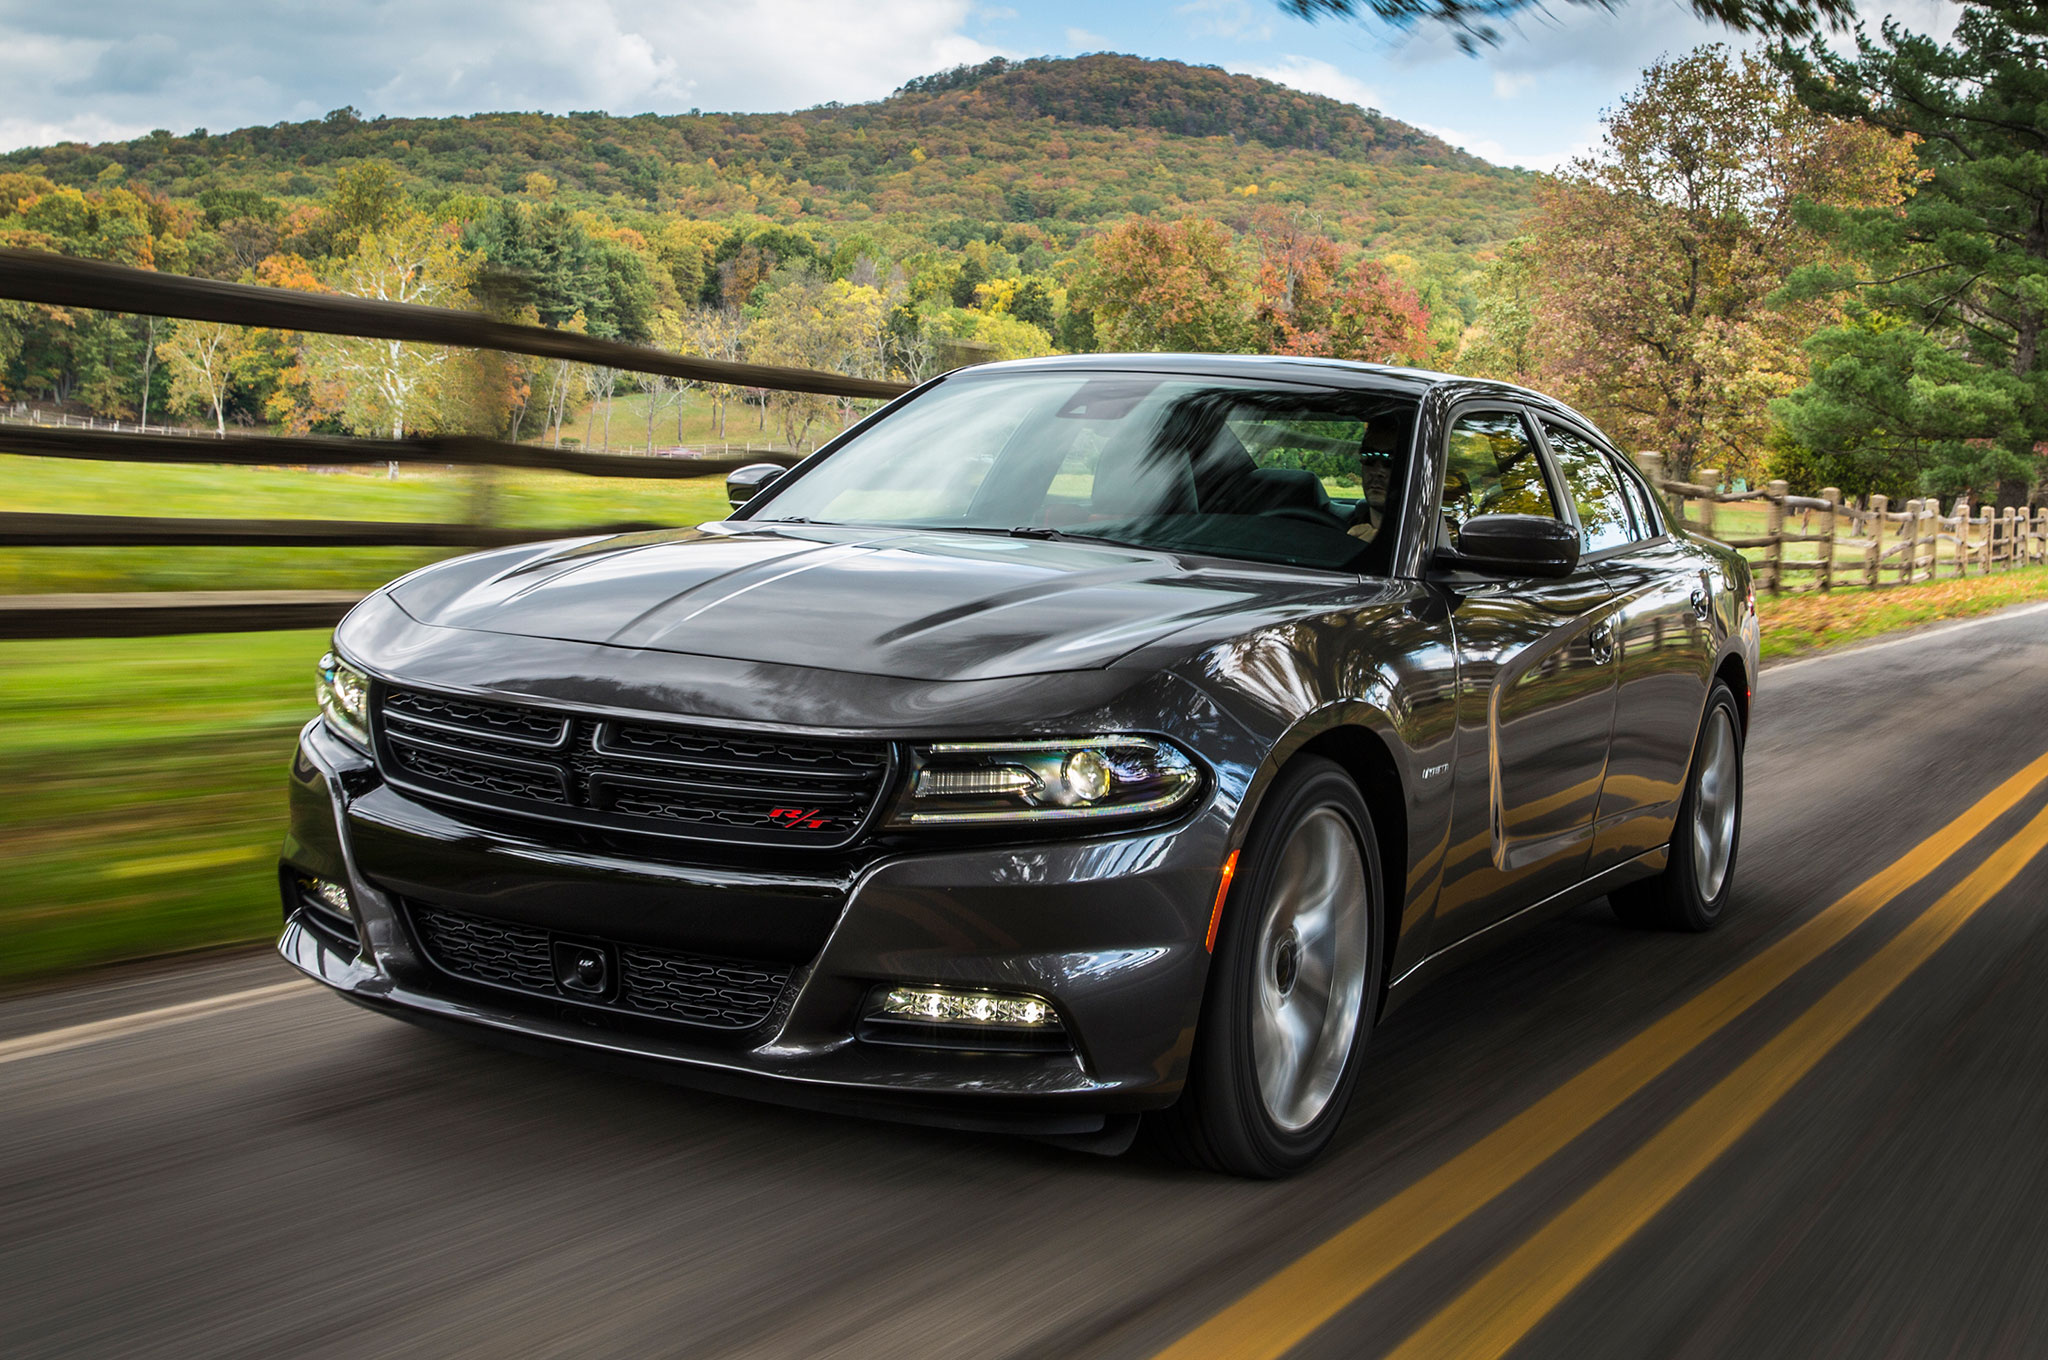 2015 Dodge Charger #17